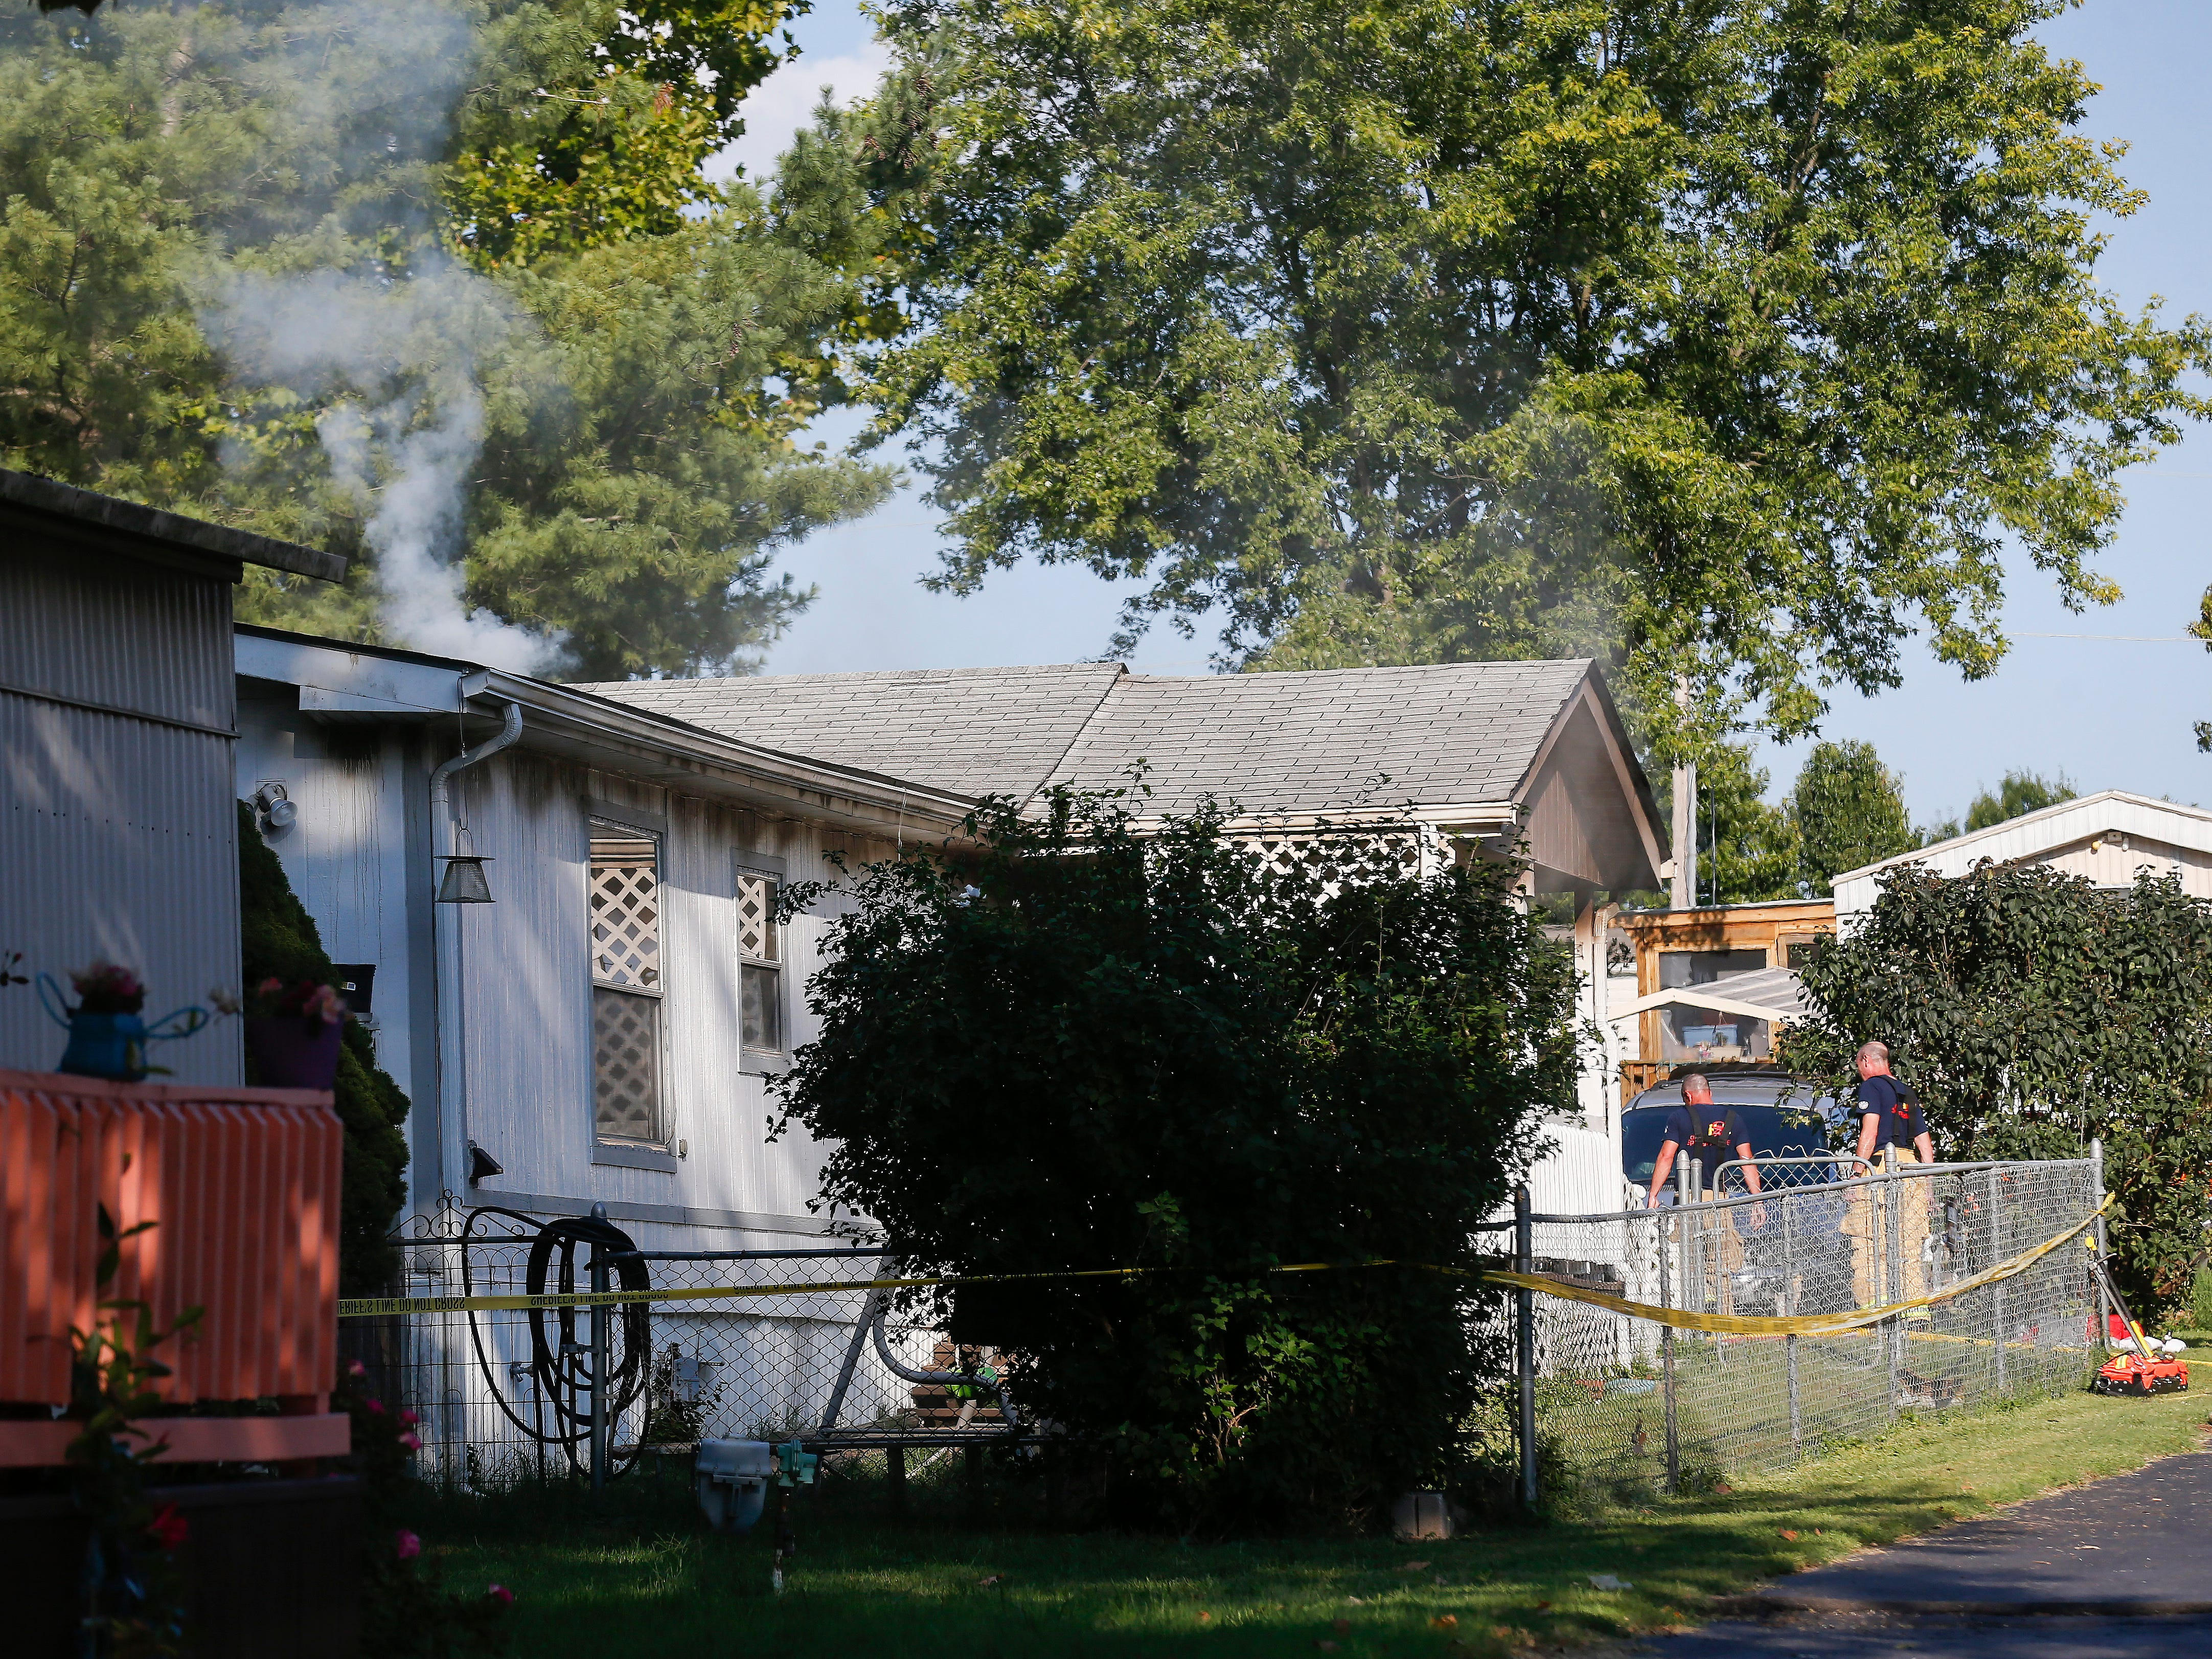 Fire departments from Republic, Battlefield, Springfield and Willard are on the scene of a fire in the Briarwood Mobile Home Park off of W Farm Road 156 near Republic.